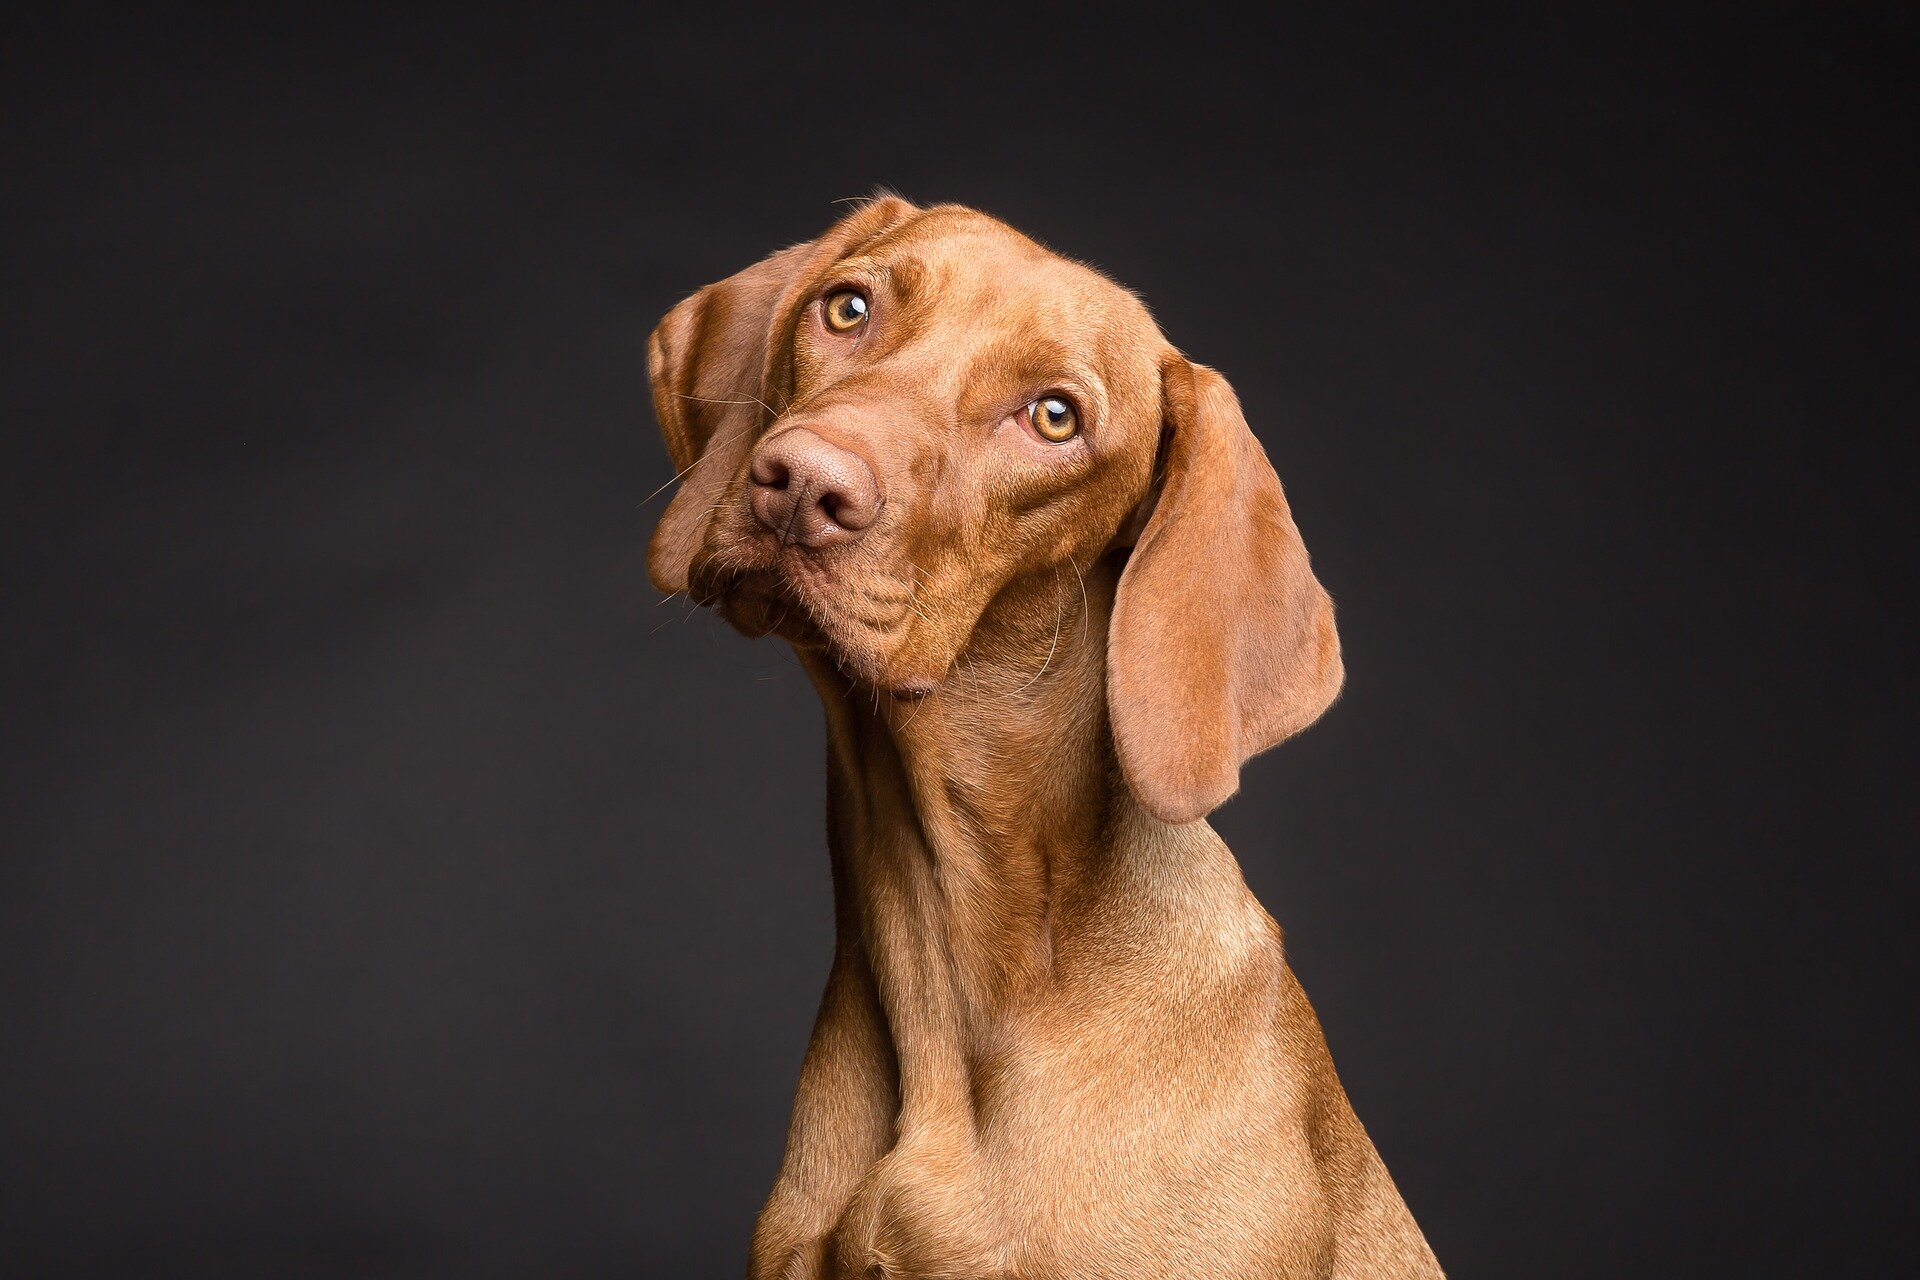 Dogs can tell when people are lying to them, study finds